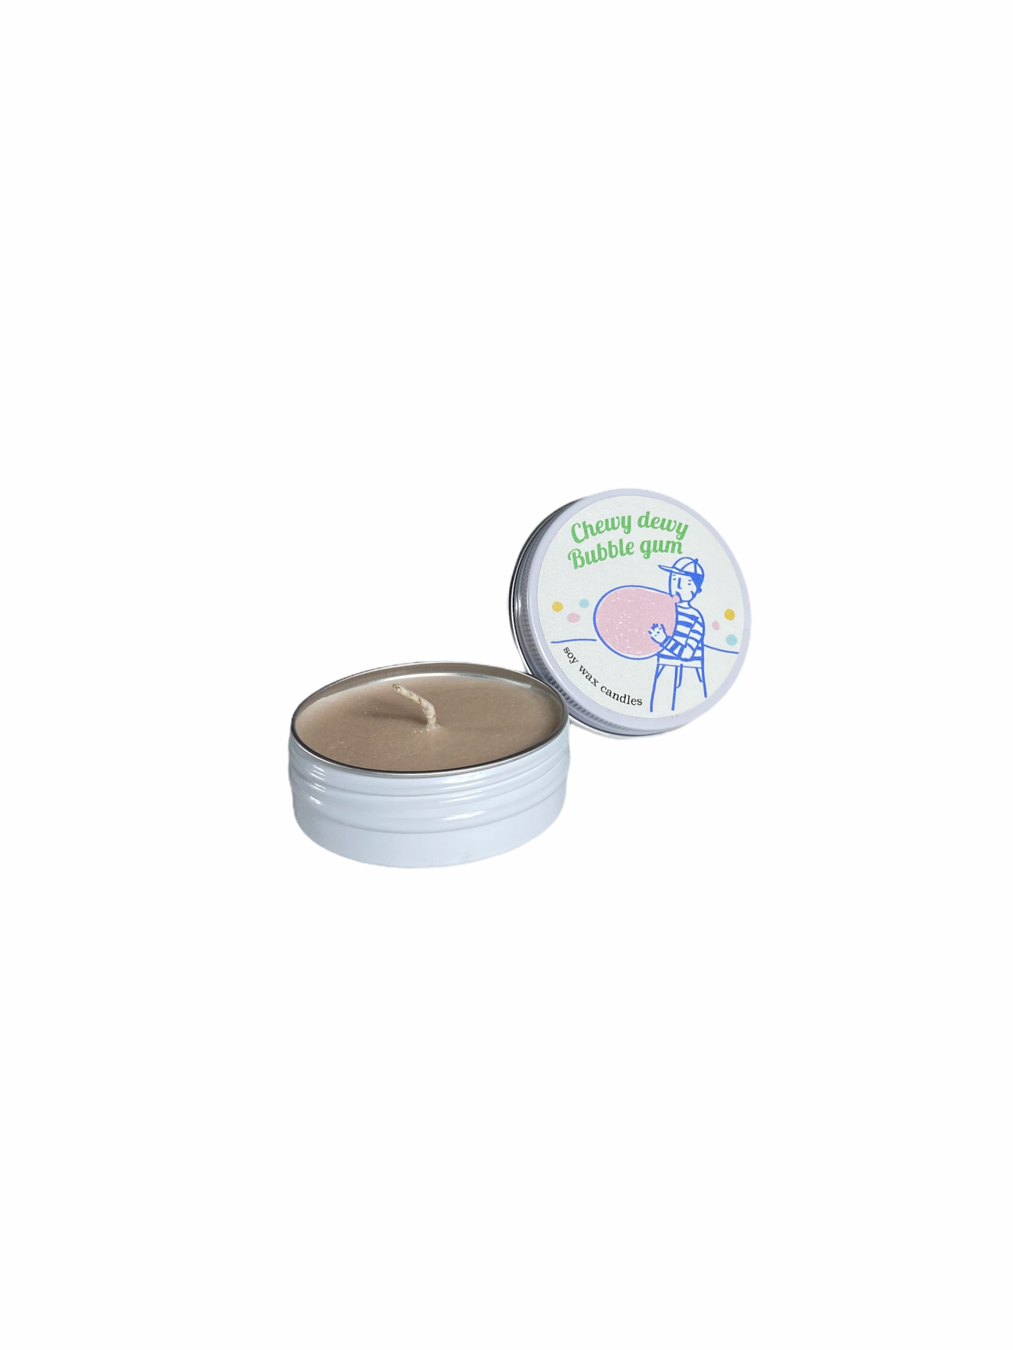 Bubble Gum Soy Wax Candle